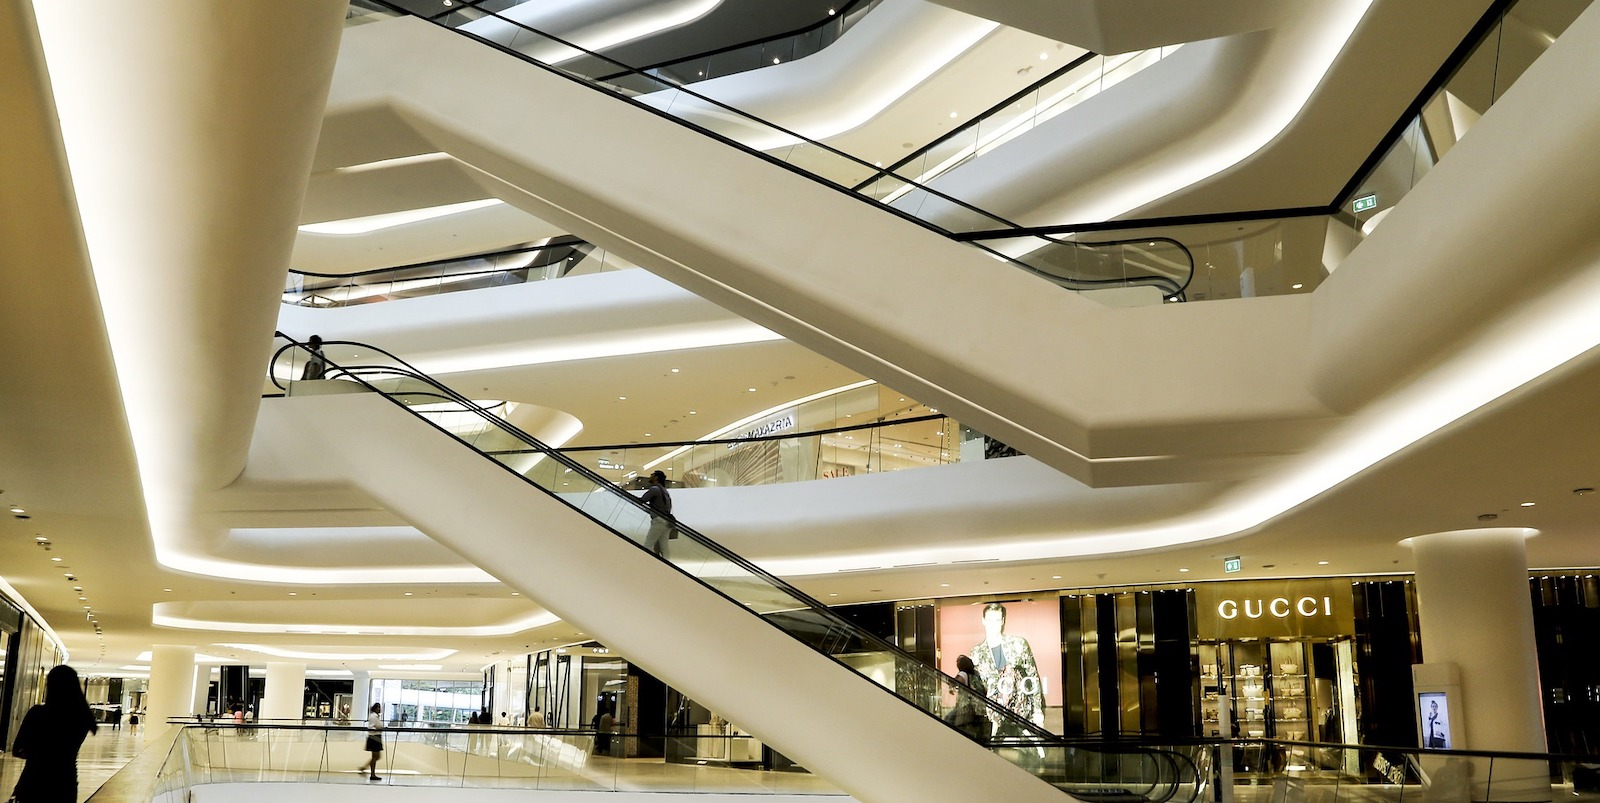 Shopping malls | The importance of customer engagement | blooloop